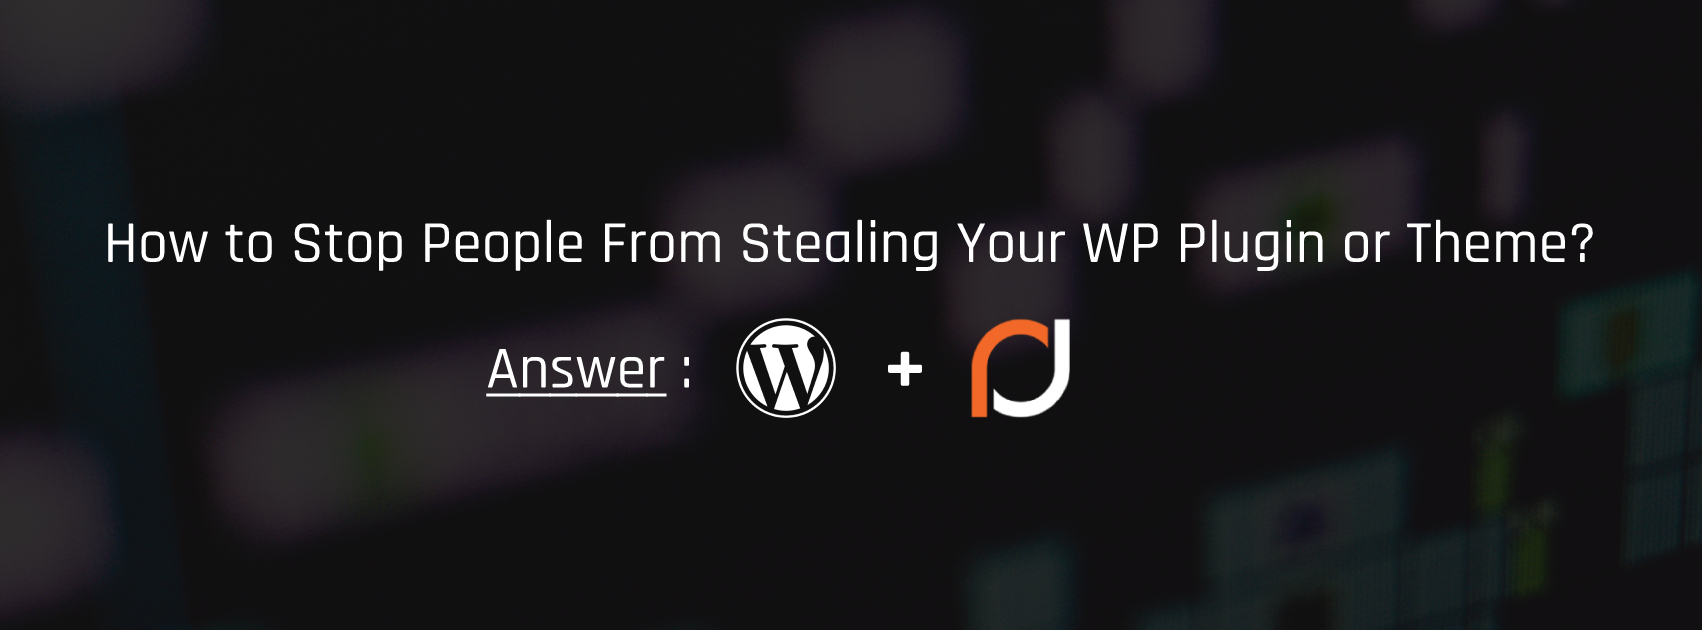 Stop People From Stealing Your Work: Implement WordPress